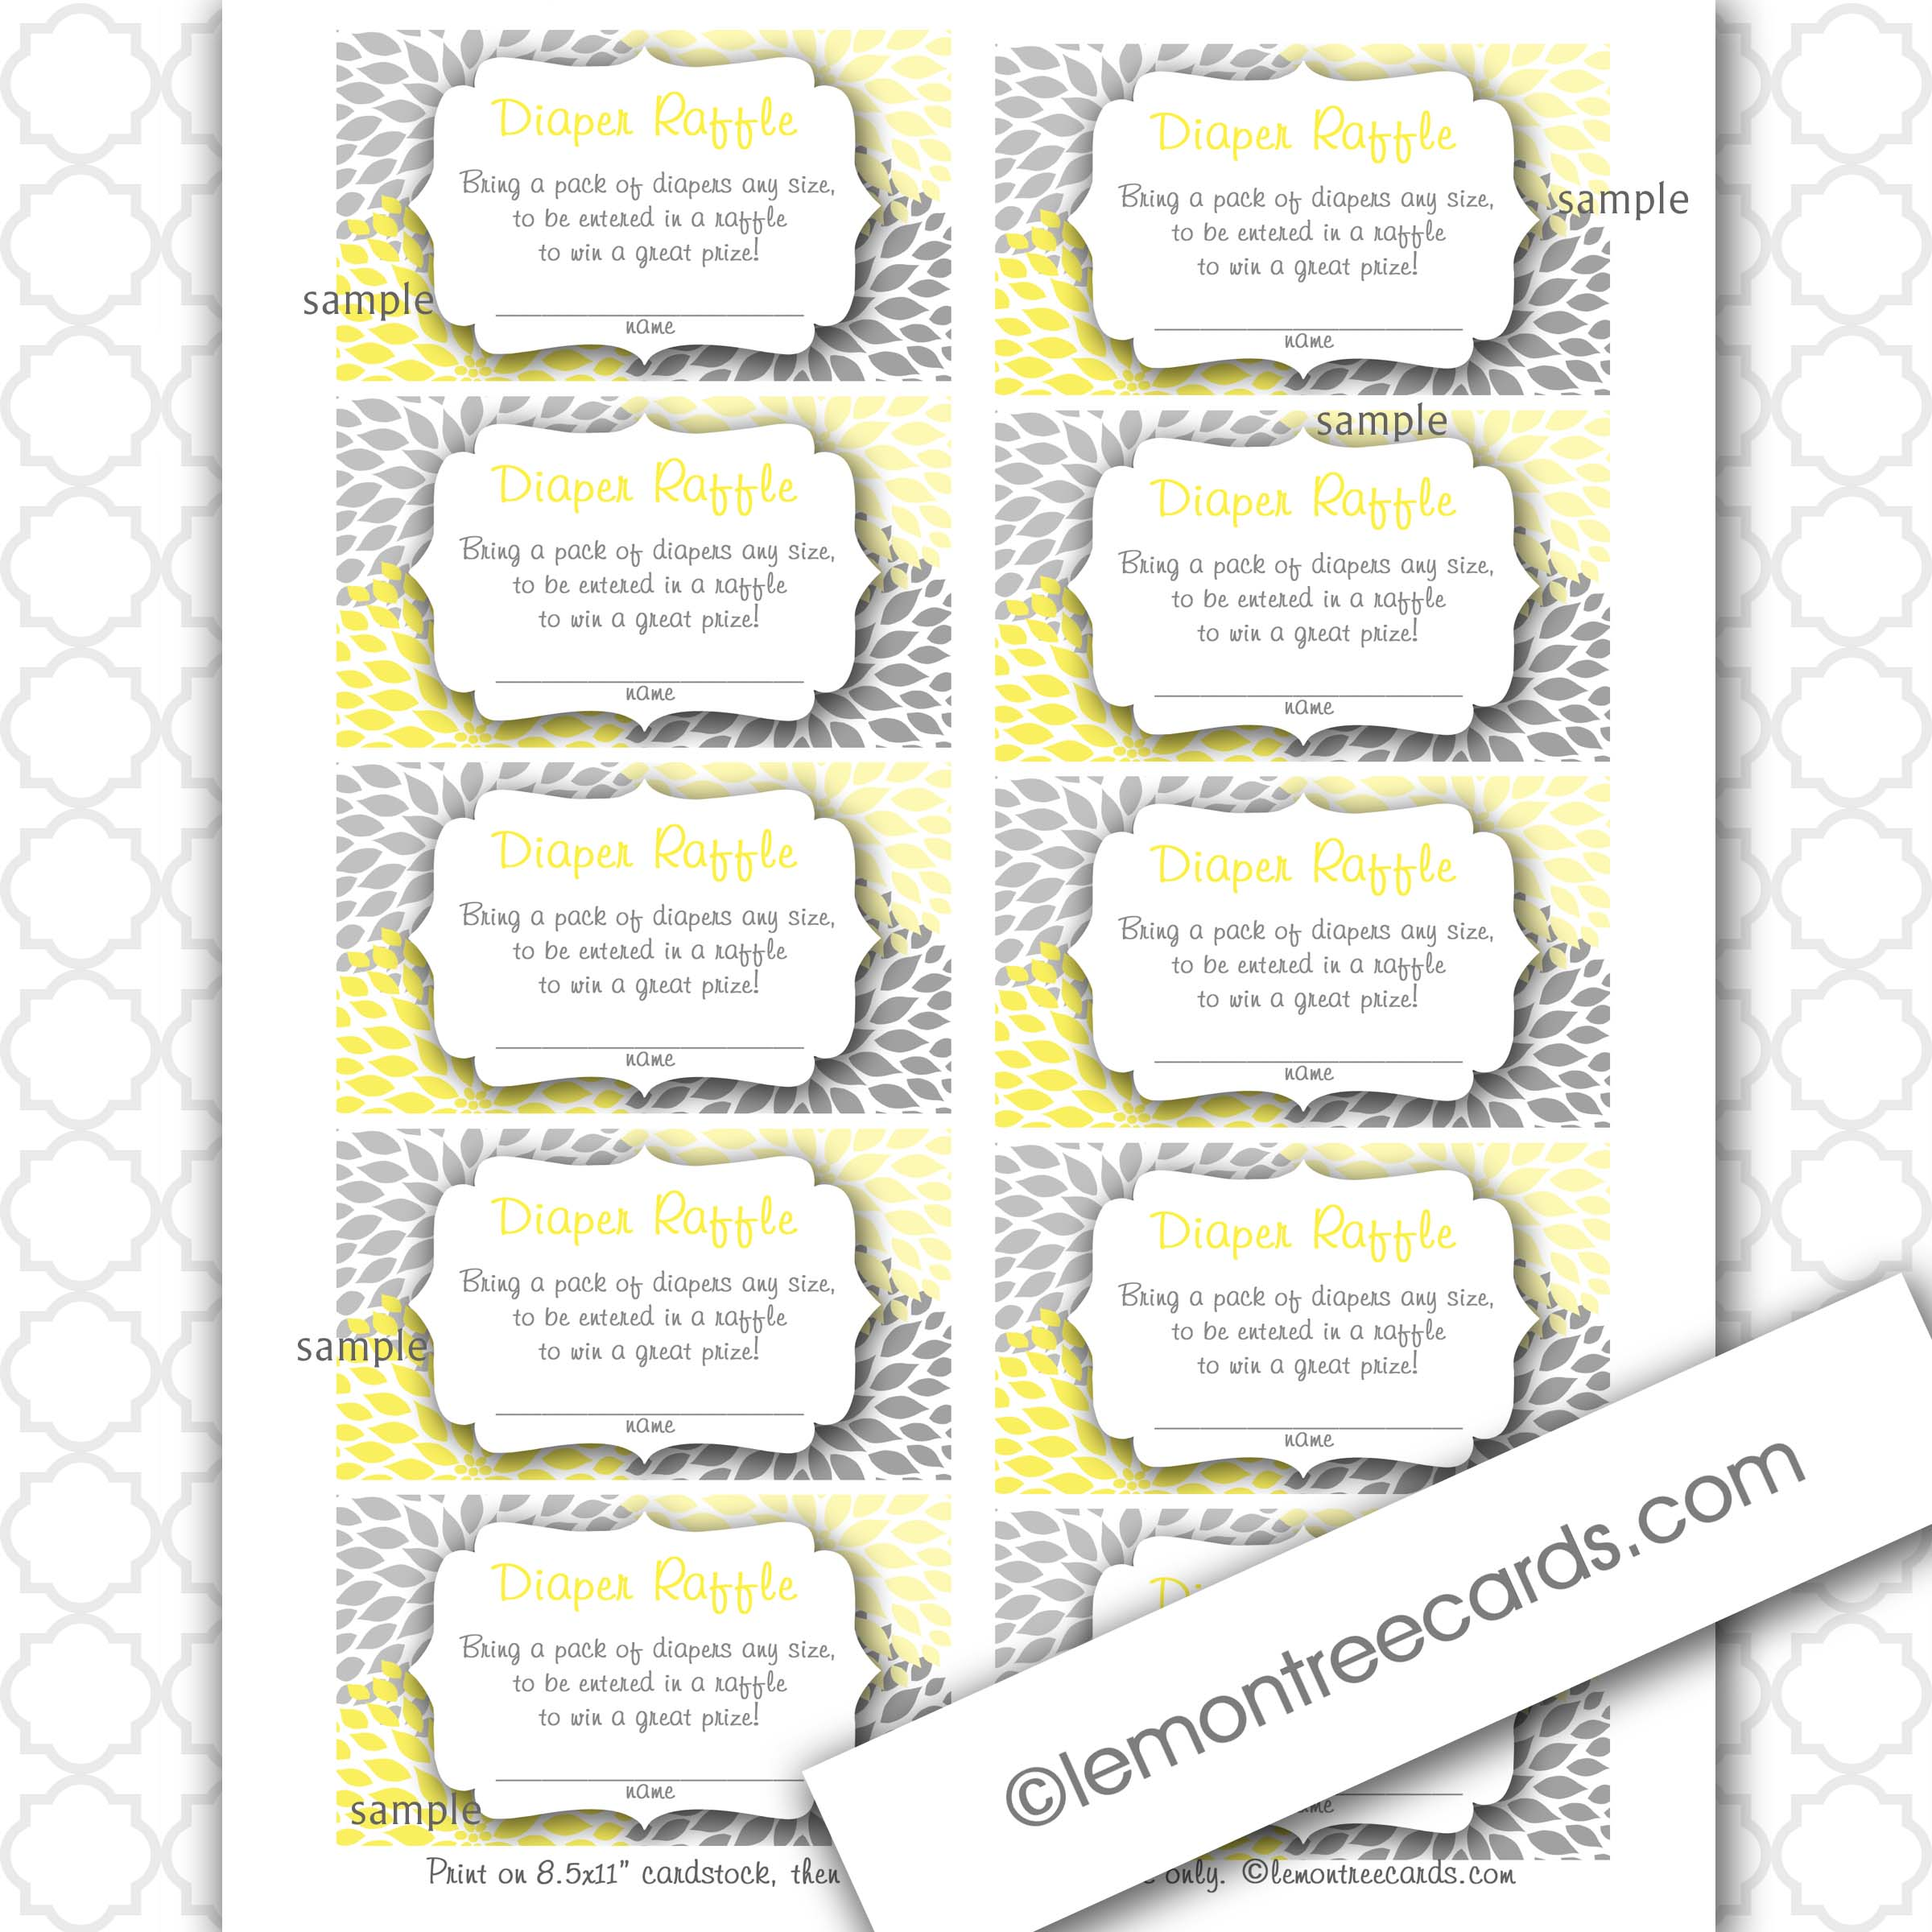 raffle ticket template cover letter templates raffle ticket template raffle ticket template raffle tickets templates printable diaper raffle tickets diaper raffle